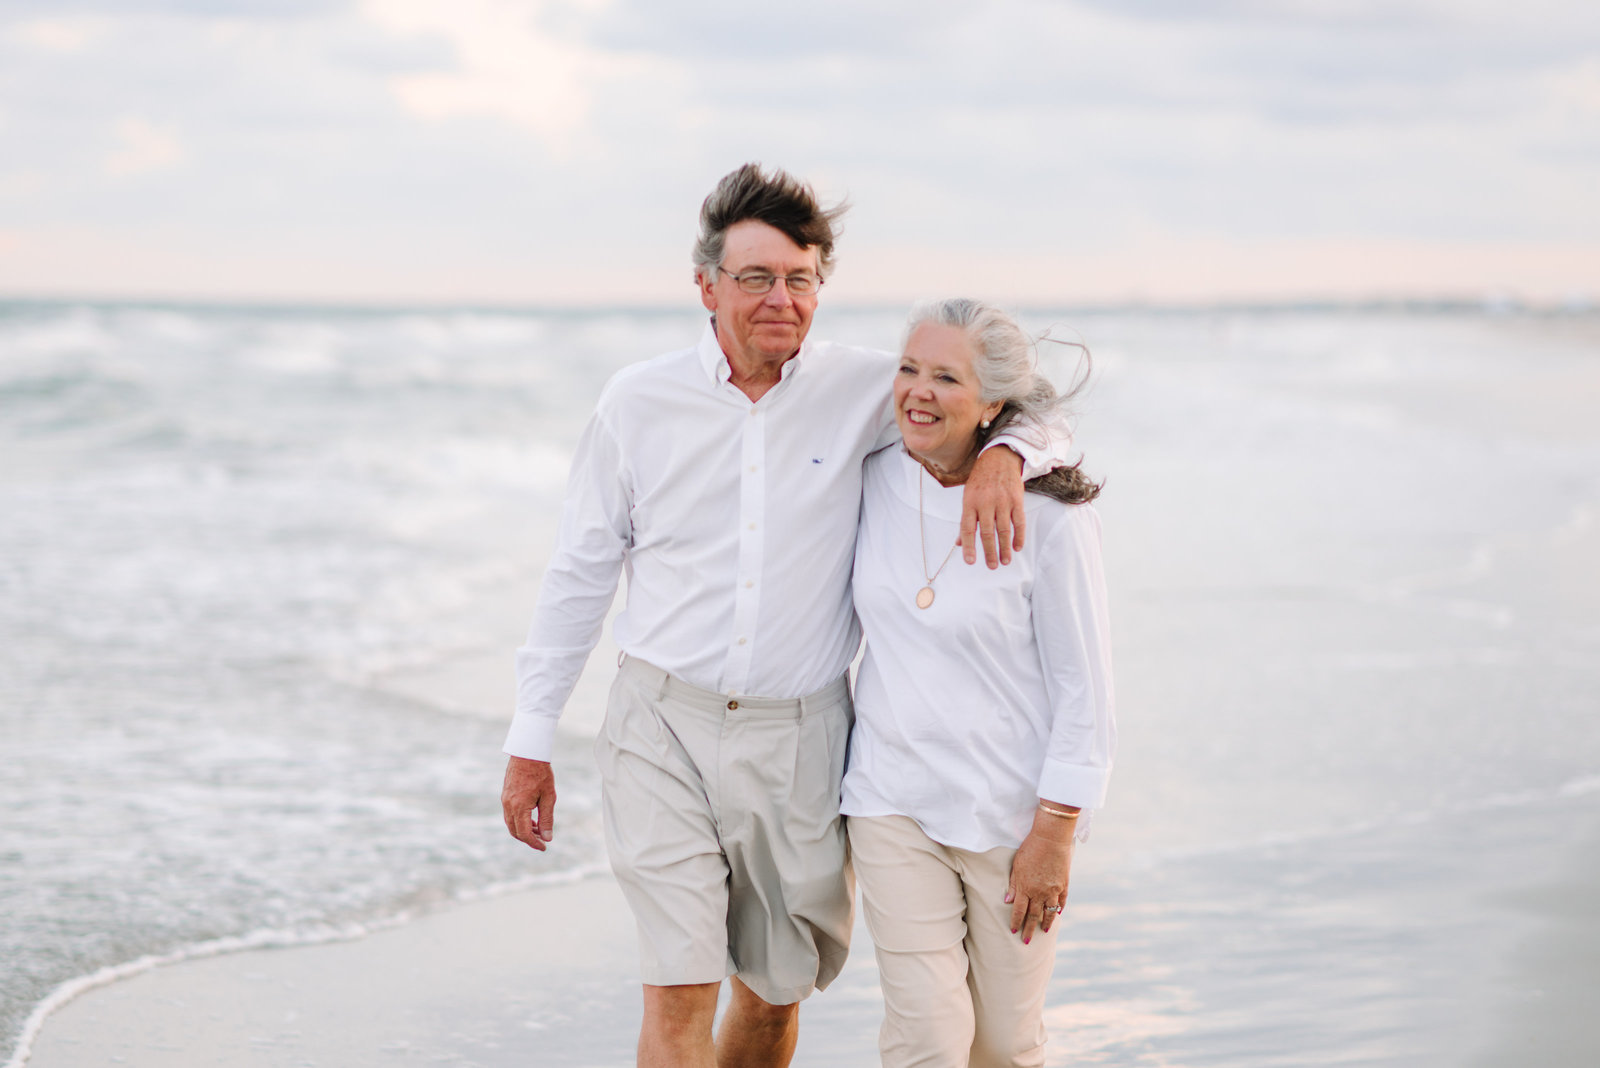 Grandparents Anniversary Photography in Myrtle Beach by Family Photographersof South Carolina